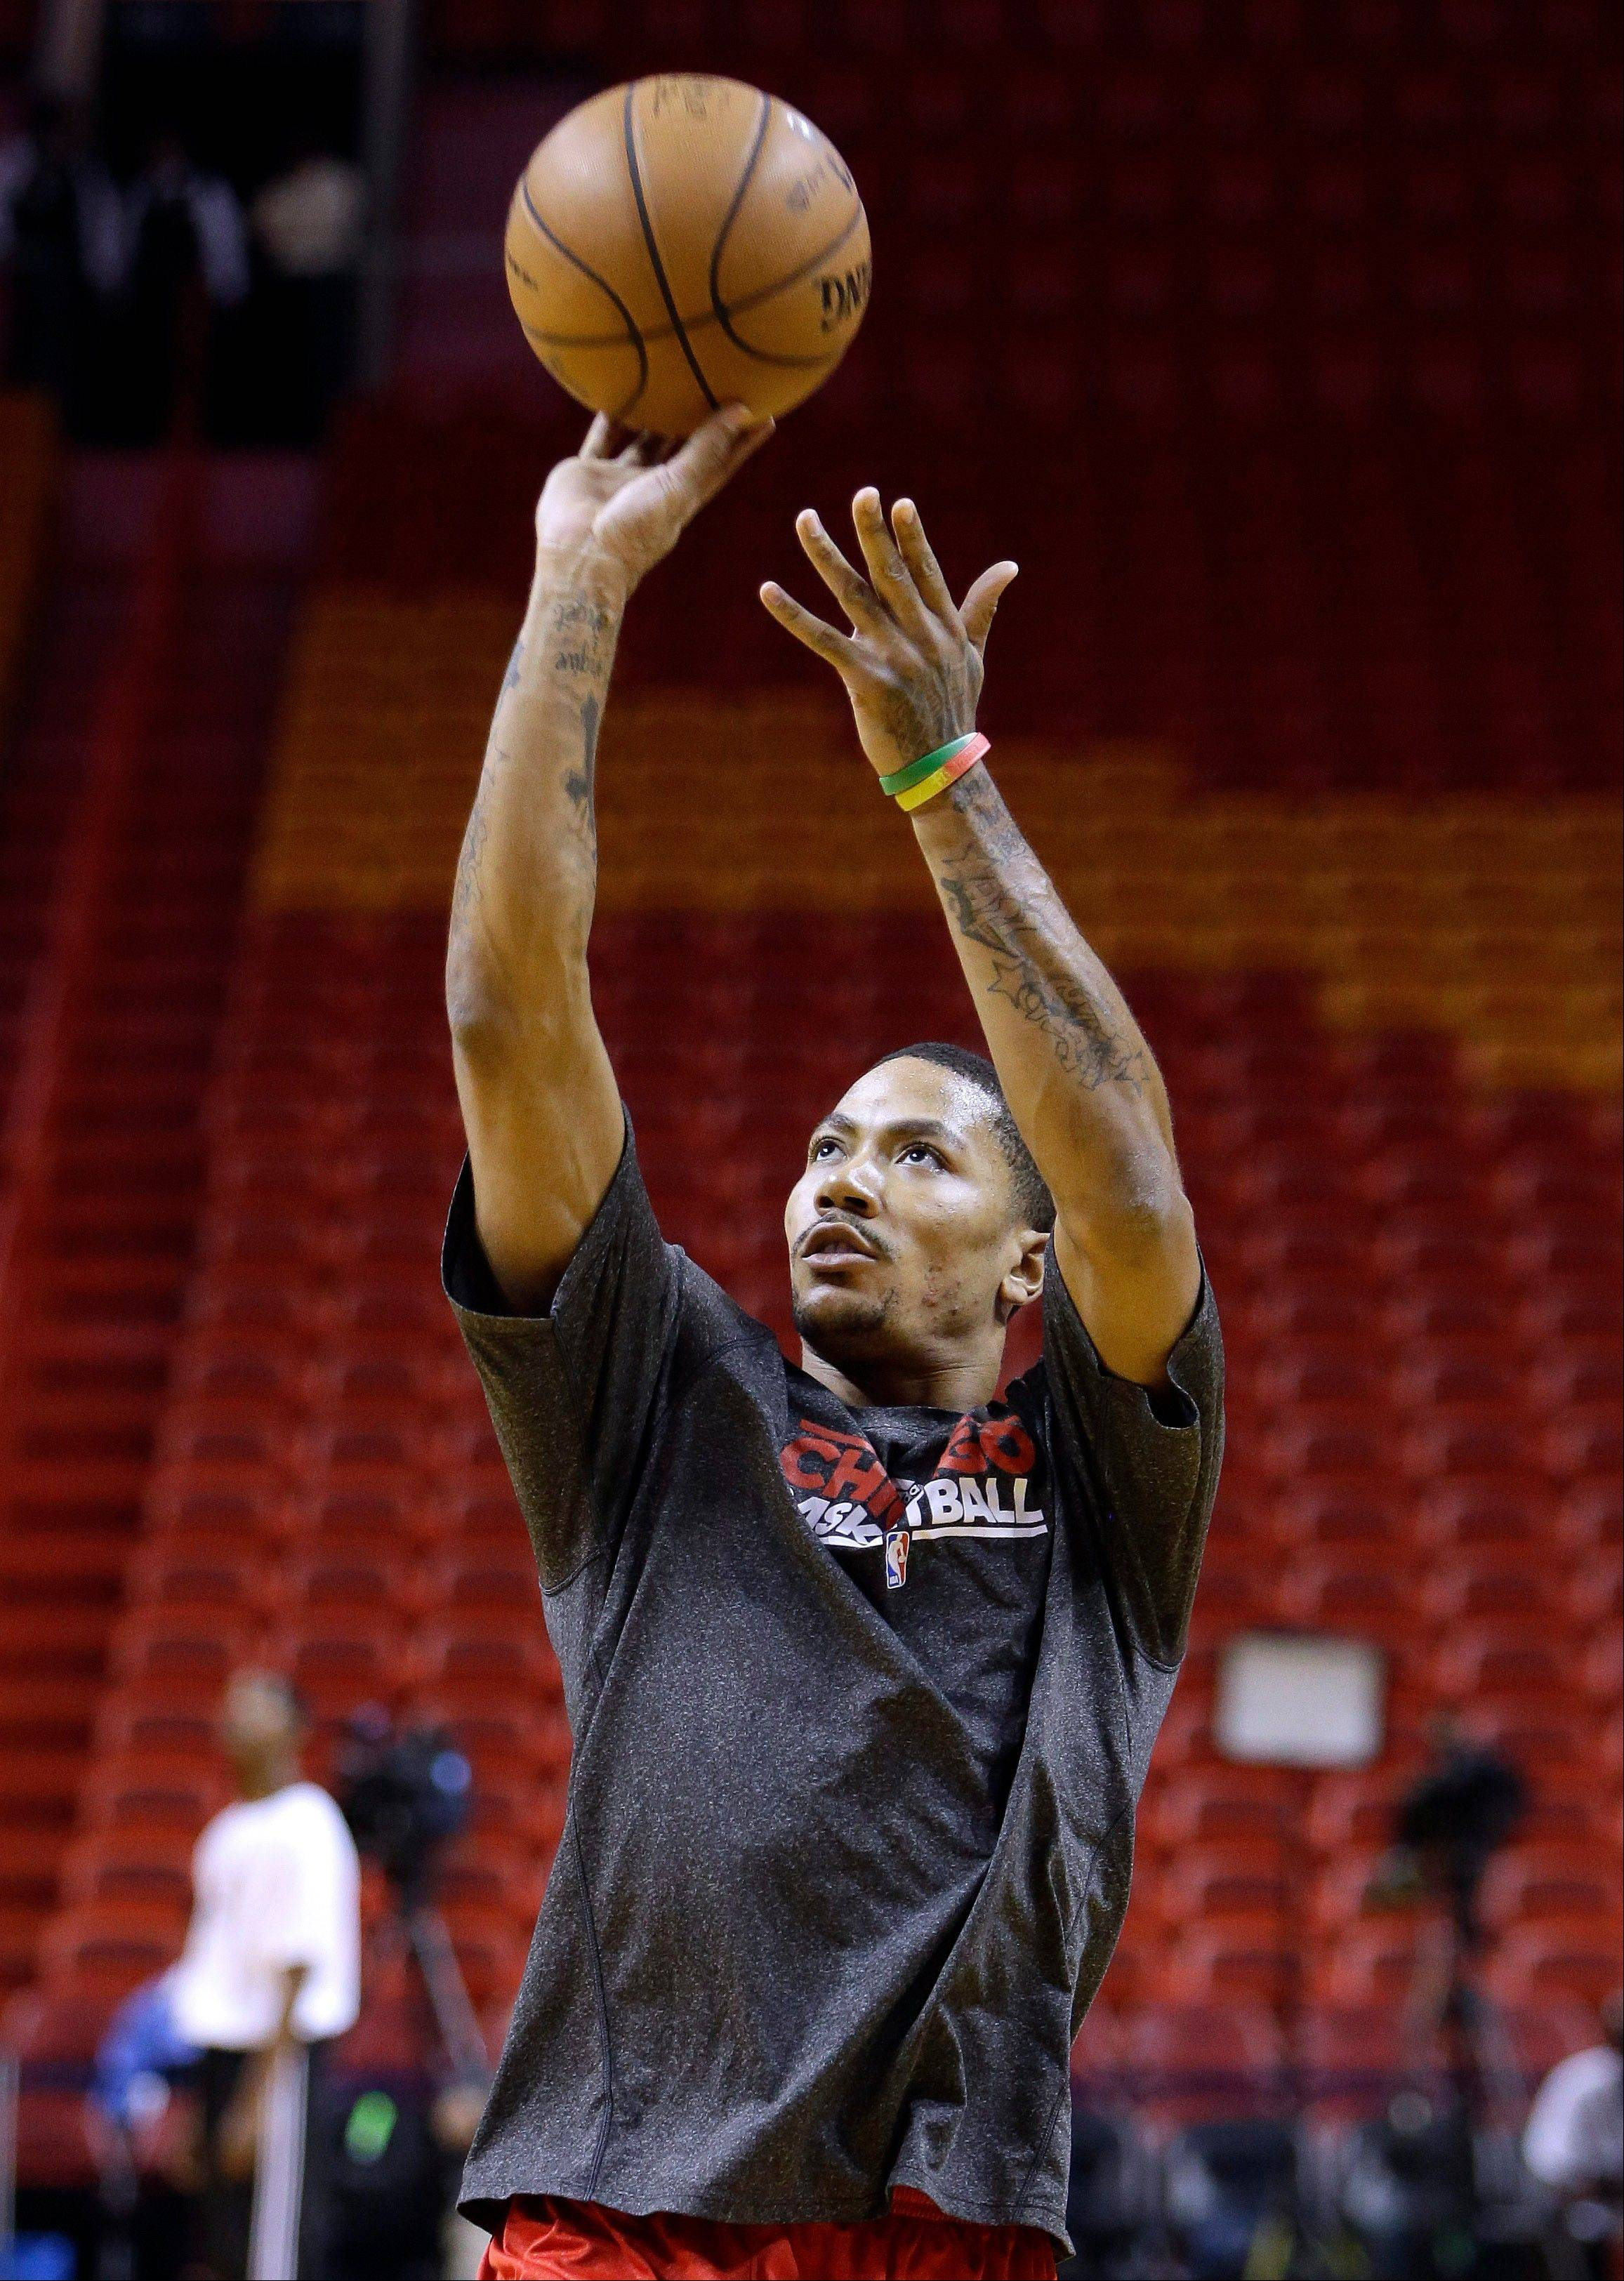 Chicago Bulls' Derrick Rose shoots before Game 2 of the NBA basketball Eastern Conference semifinals between the Bulls and the Miami Heat, Wednesday, May 8, 2013, in Miami. Rose has not played since hurting his knee in April 2012.